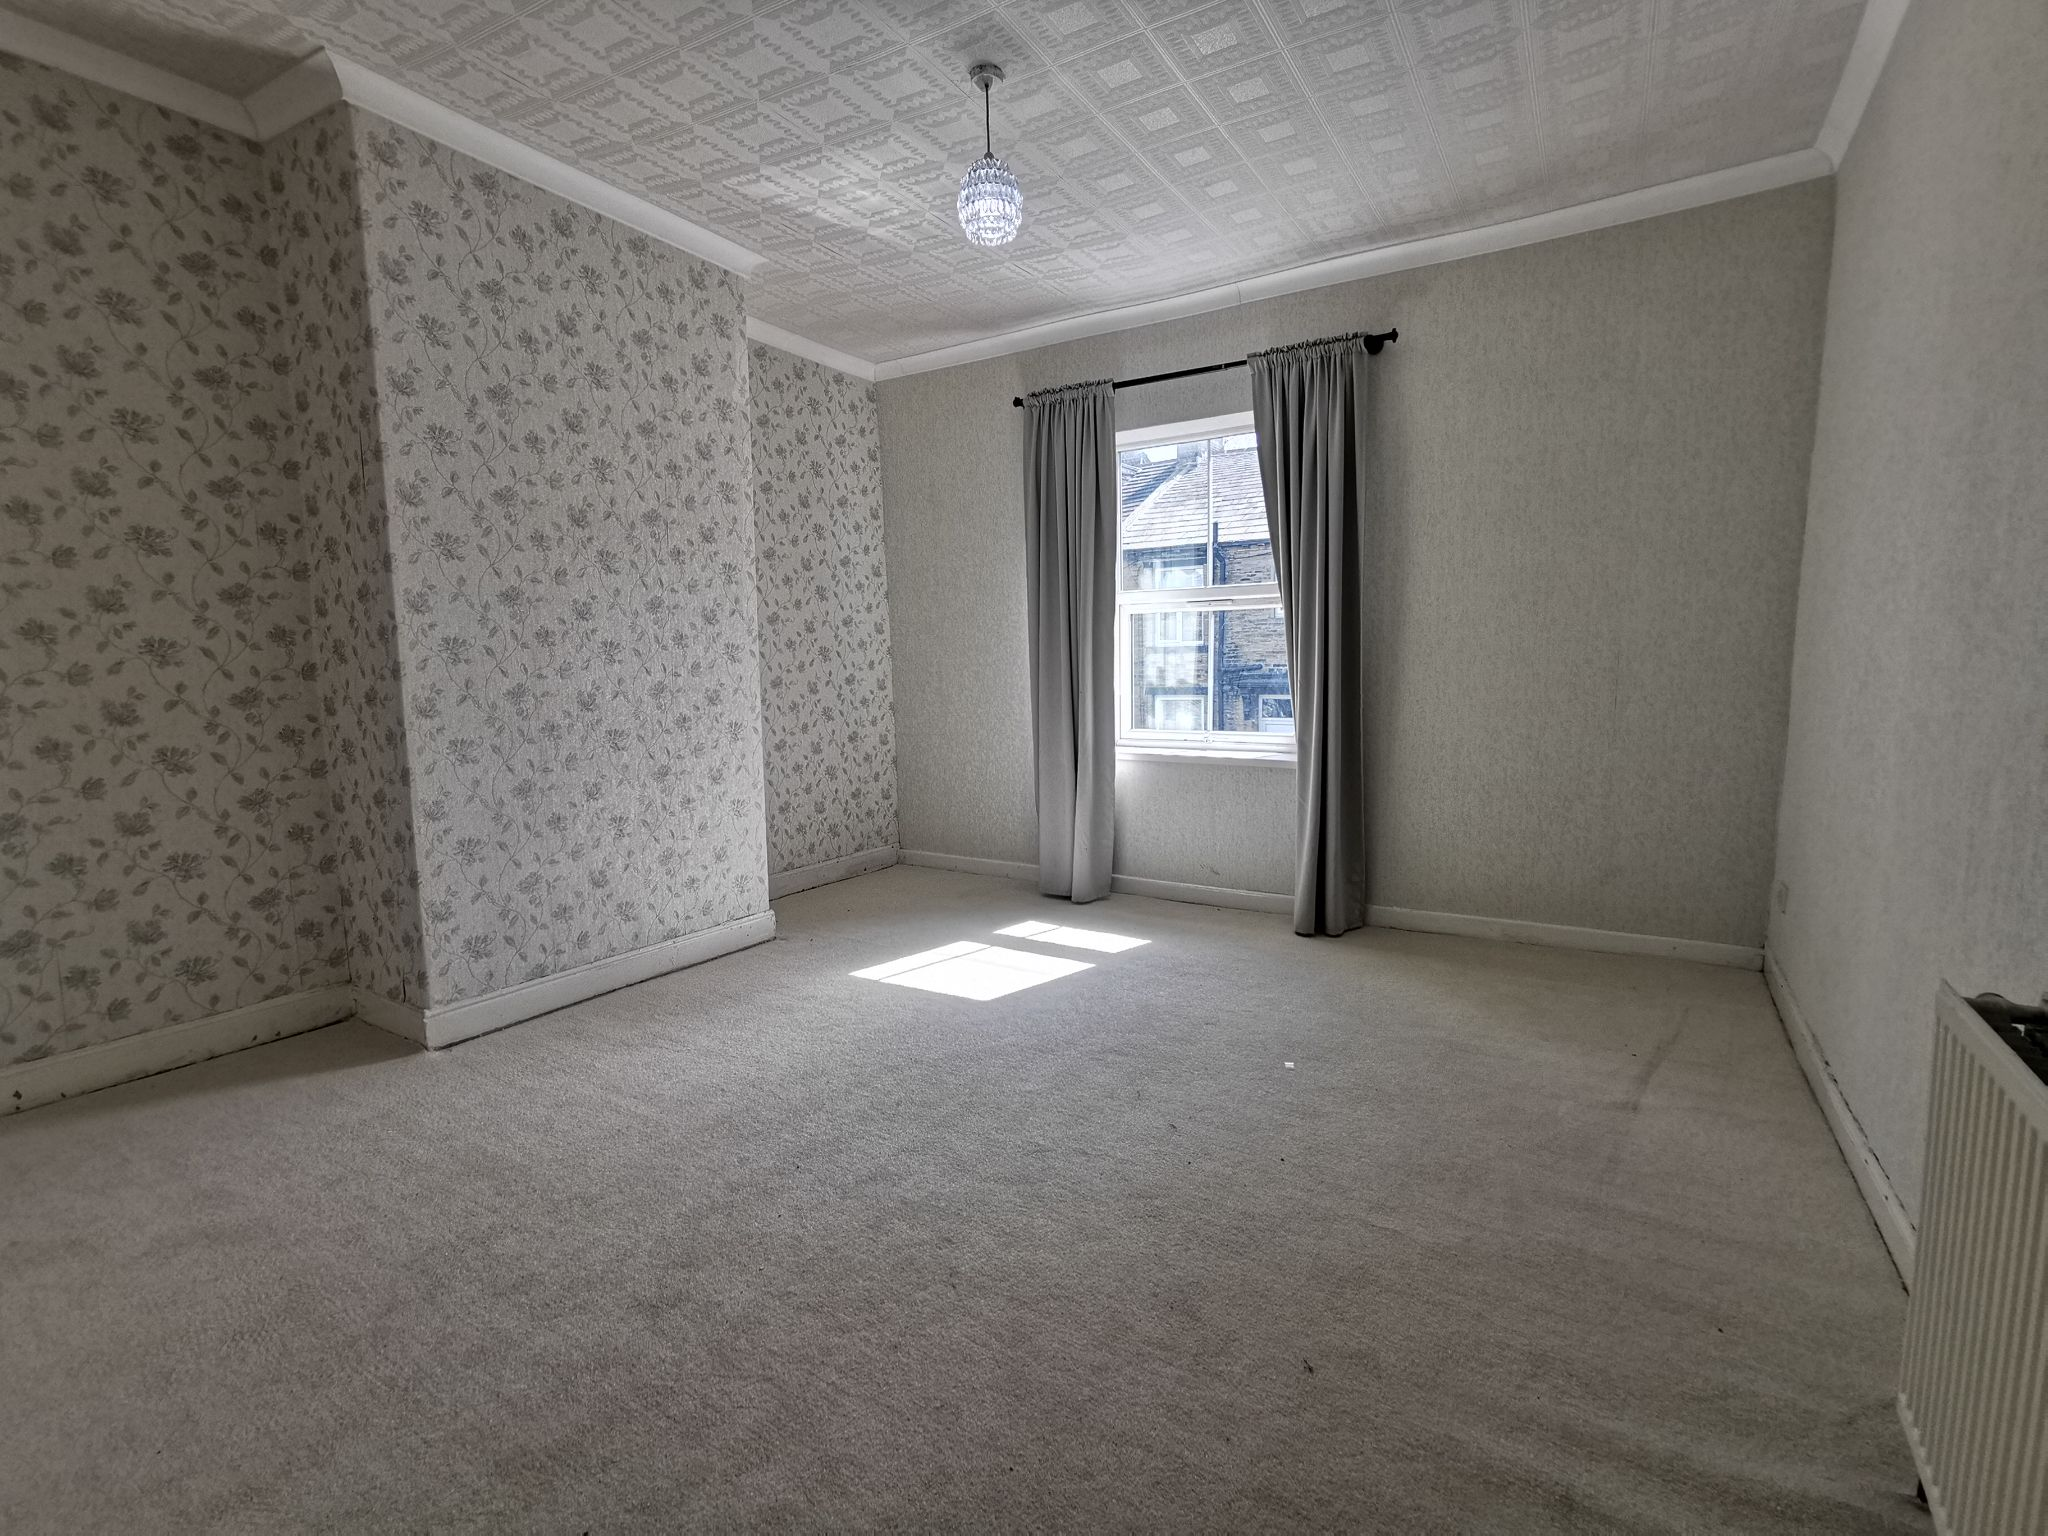 2 bedroom mid terraced house Let in Bradford - Photograph 9.